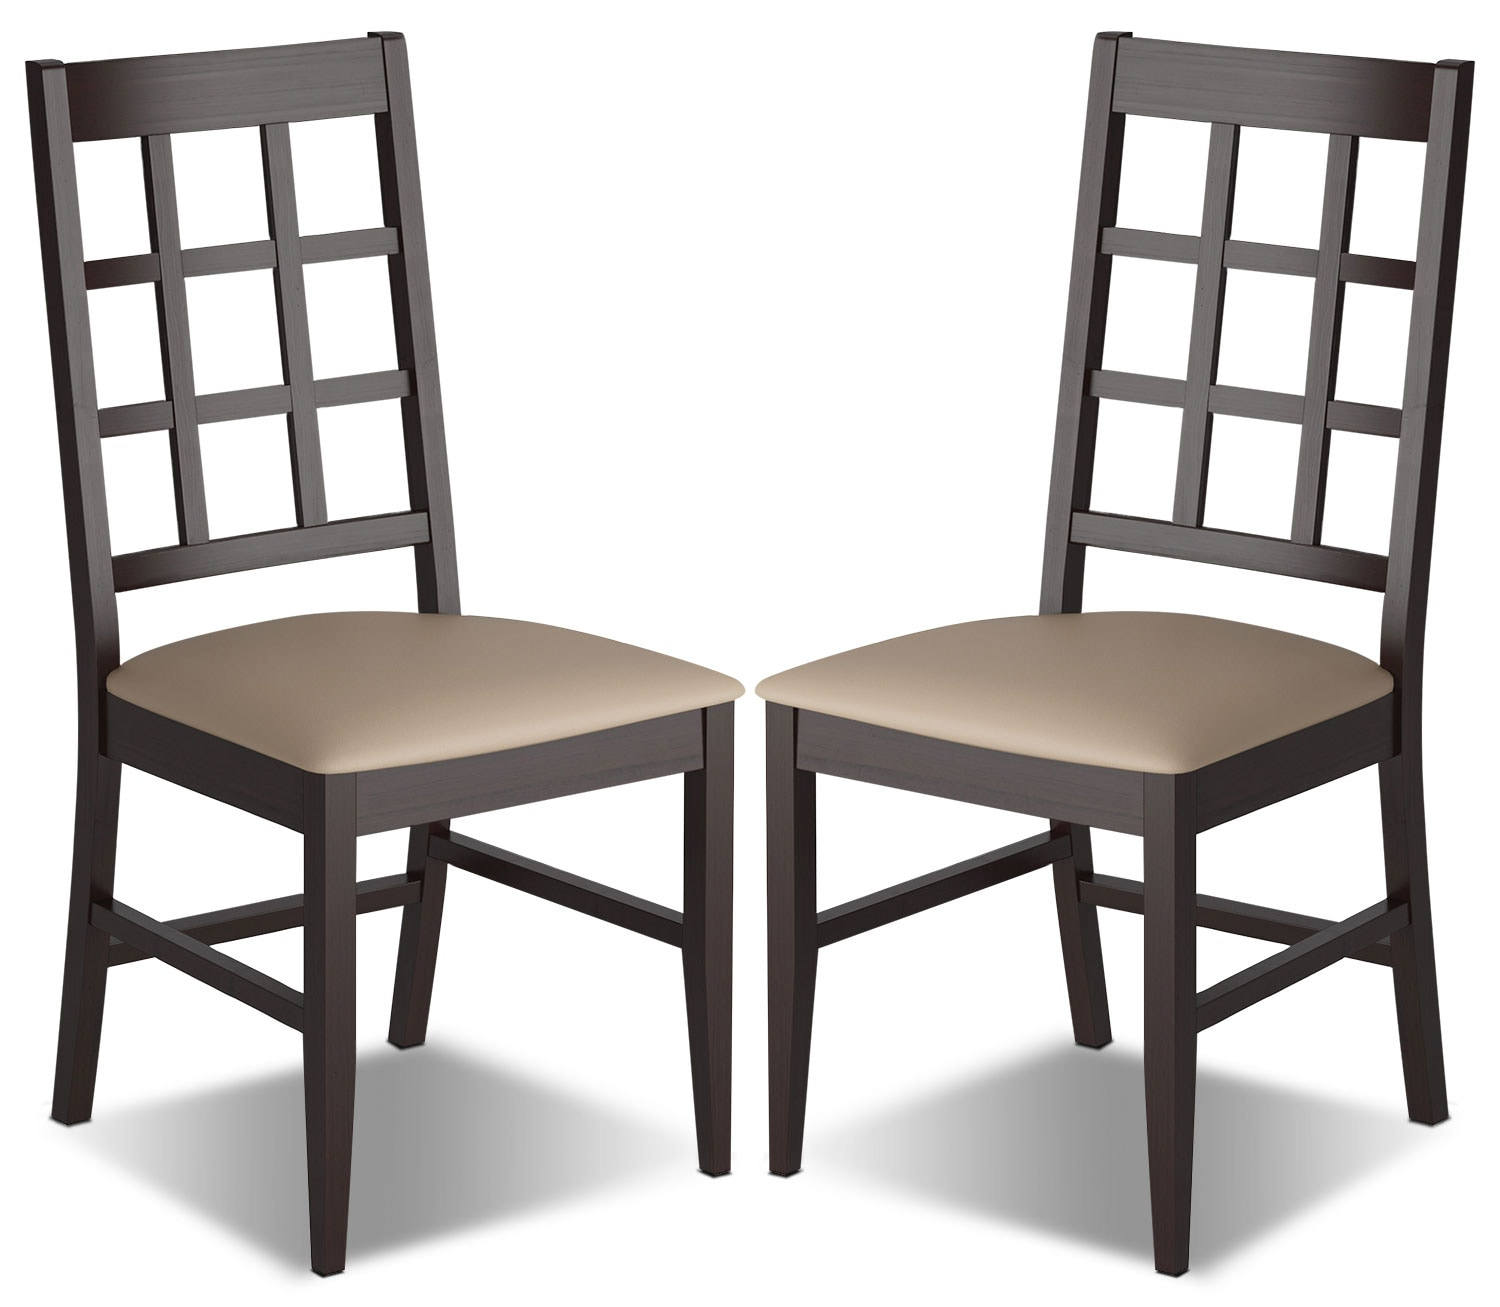 Dining Room Furniture - Atwood Dining Chair with Faux Leather Seat, Set of 2 – Grey